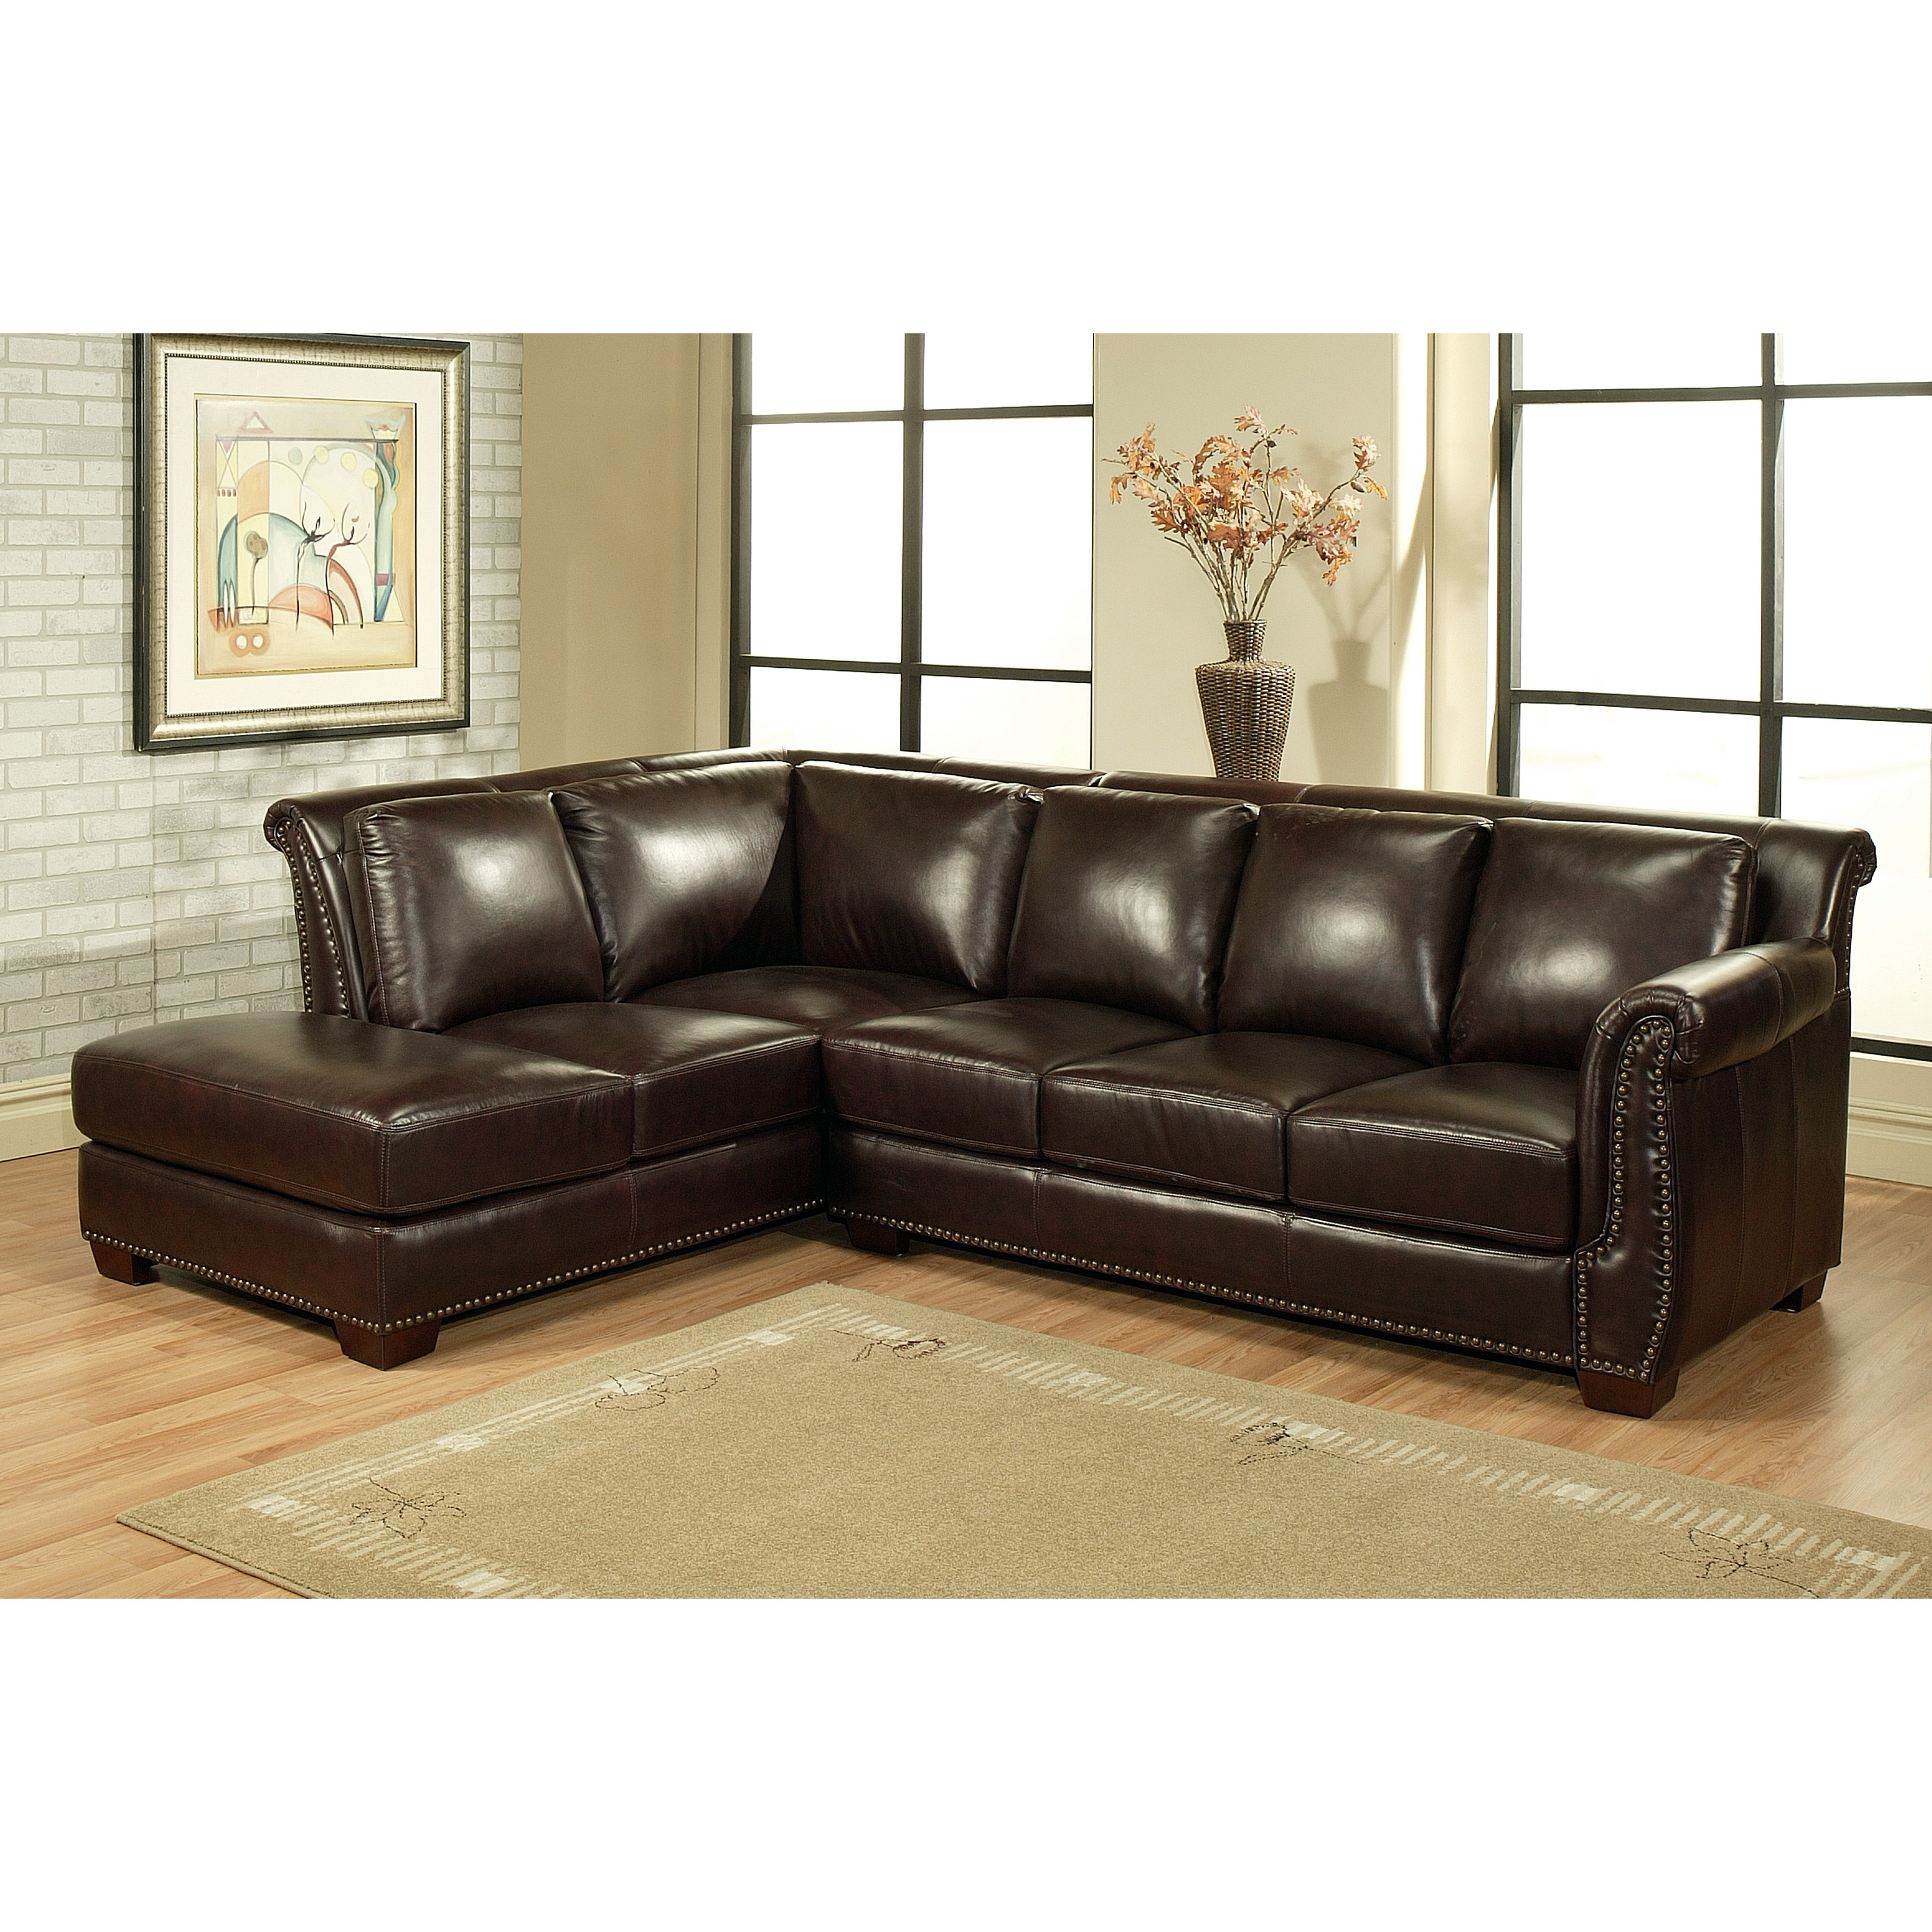 Abbyson Sectional Sofas For Well Known Sectional Sofa Design: Elegant Abbyson Sectional Sofa Abbyson (View 5 of 15)